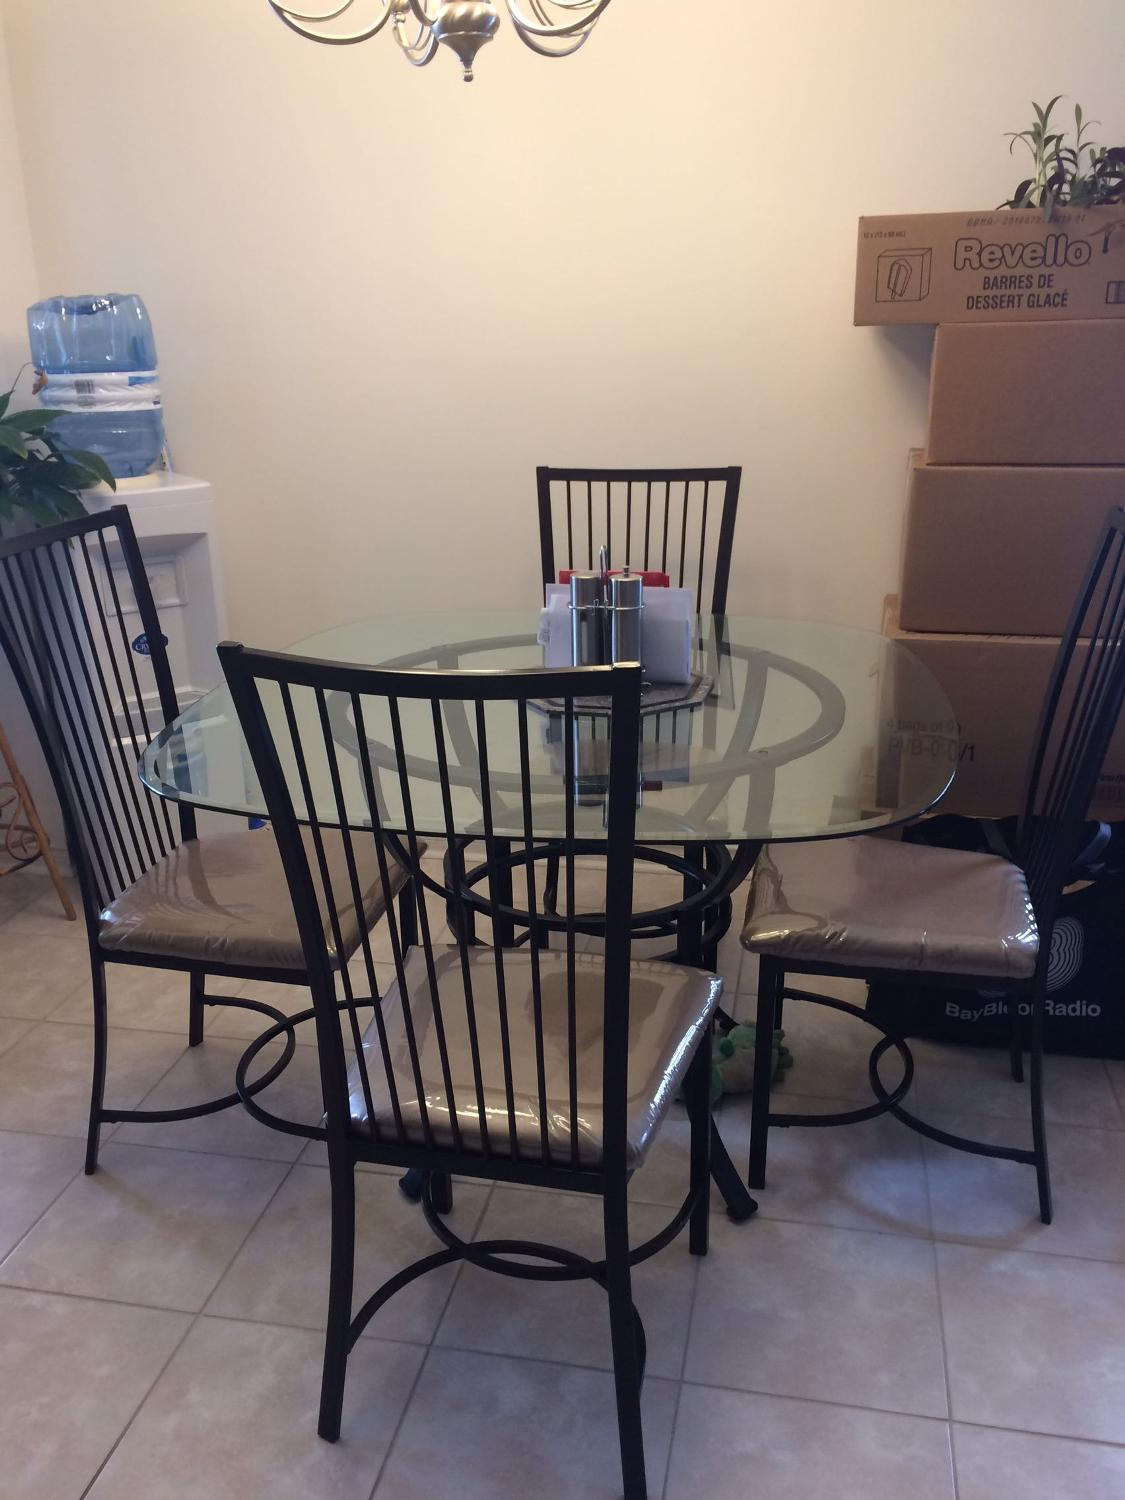 Best Glass Dinner Table For 4 Plastic Cover Still On The Chairs For Sale In Scarborough Ontario